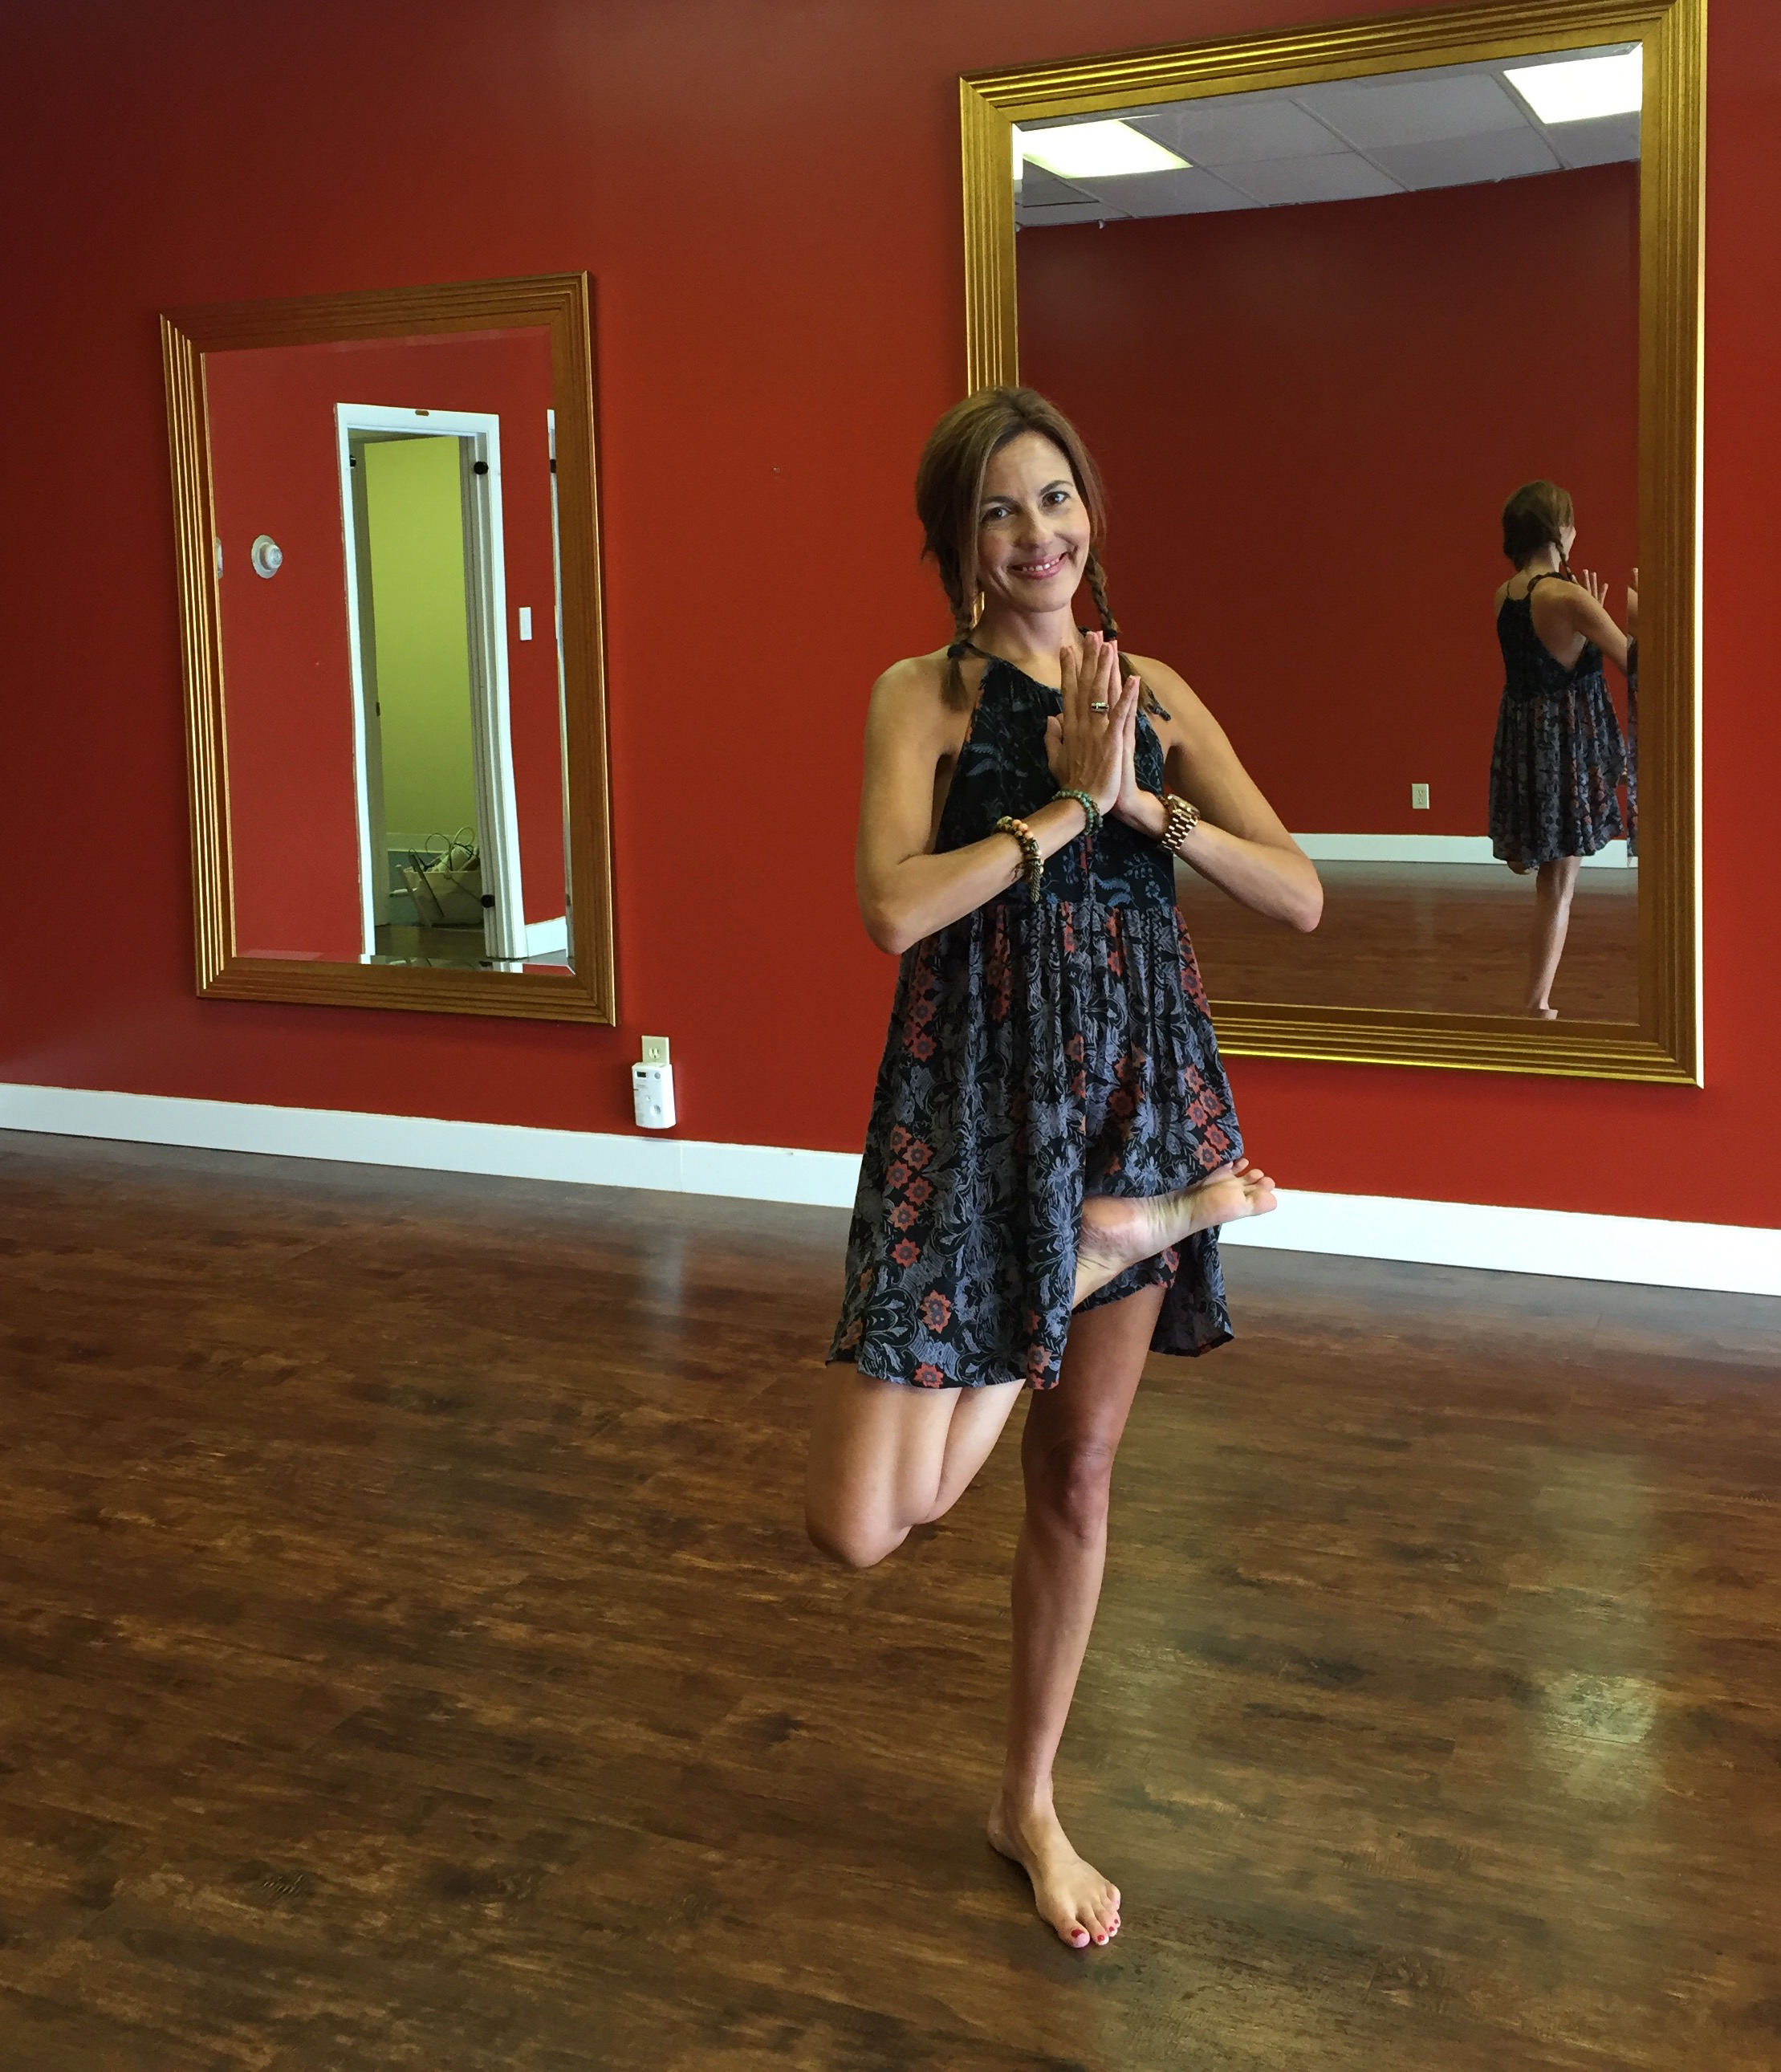 My last photo before turning in the keys to my studio. So grateful!